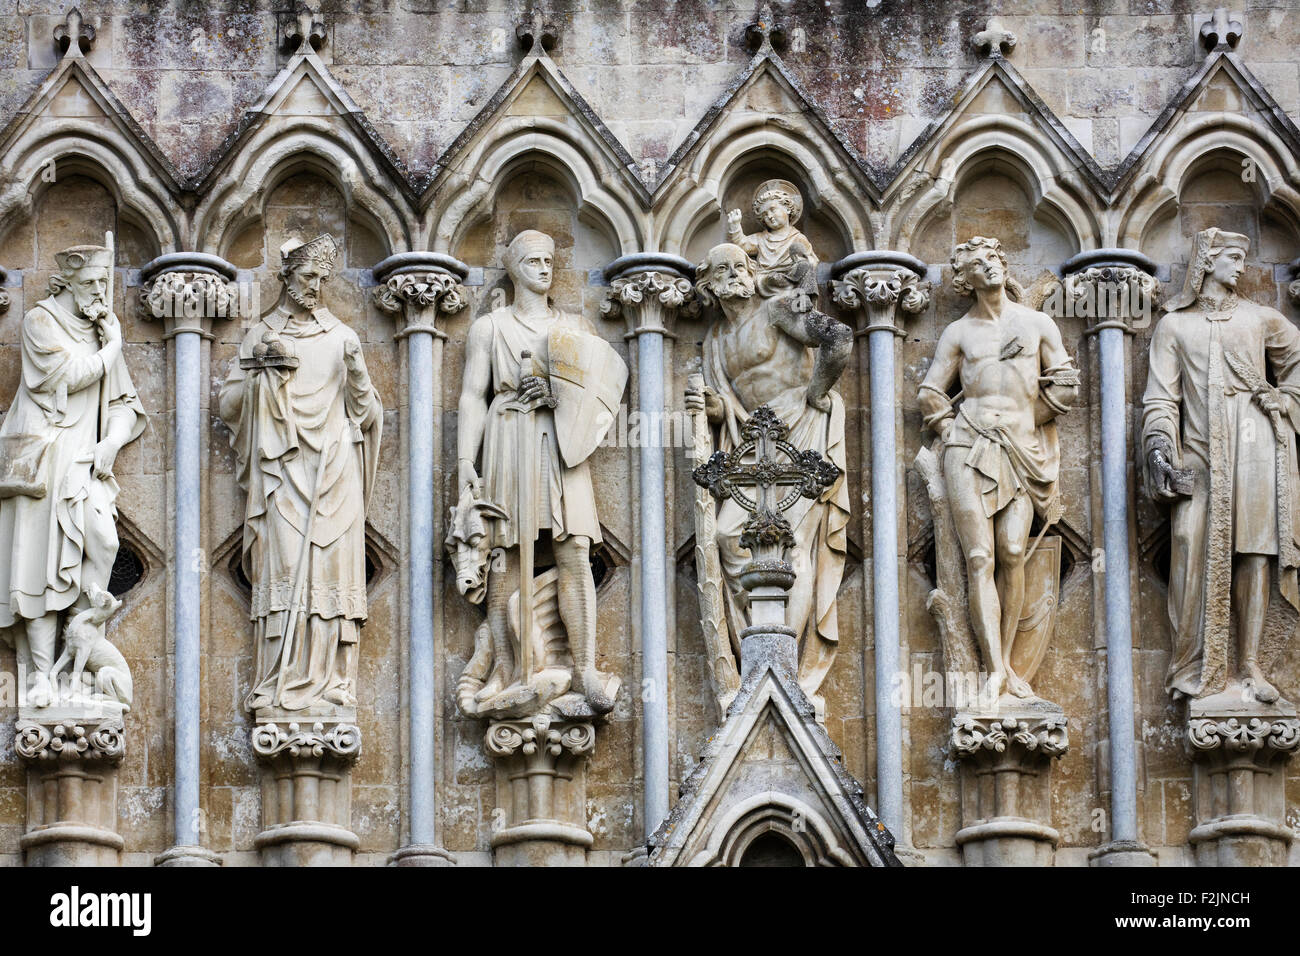 Stone sculptures of Christian saints and martyrs above the entrance to Salisbury cathedral Wiltshire UK - Stock Image